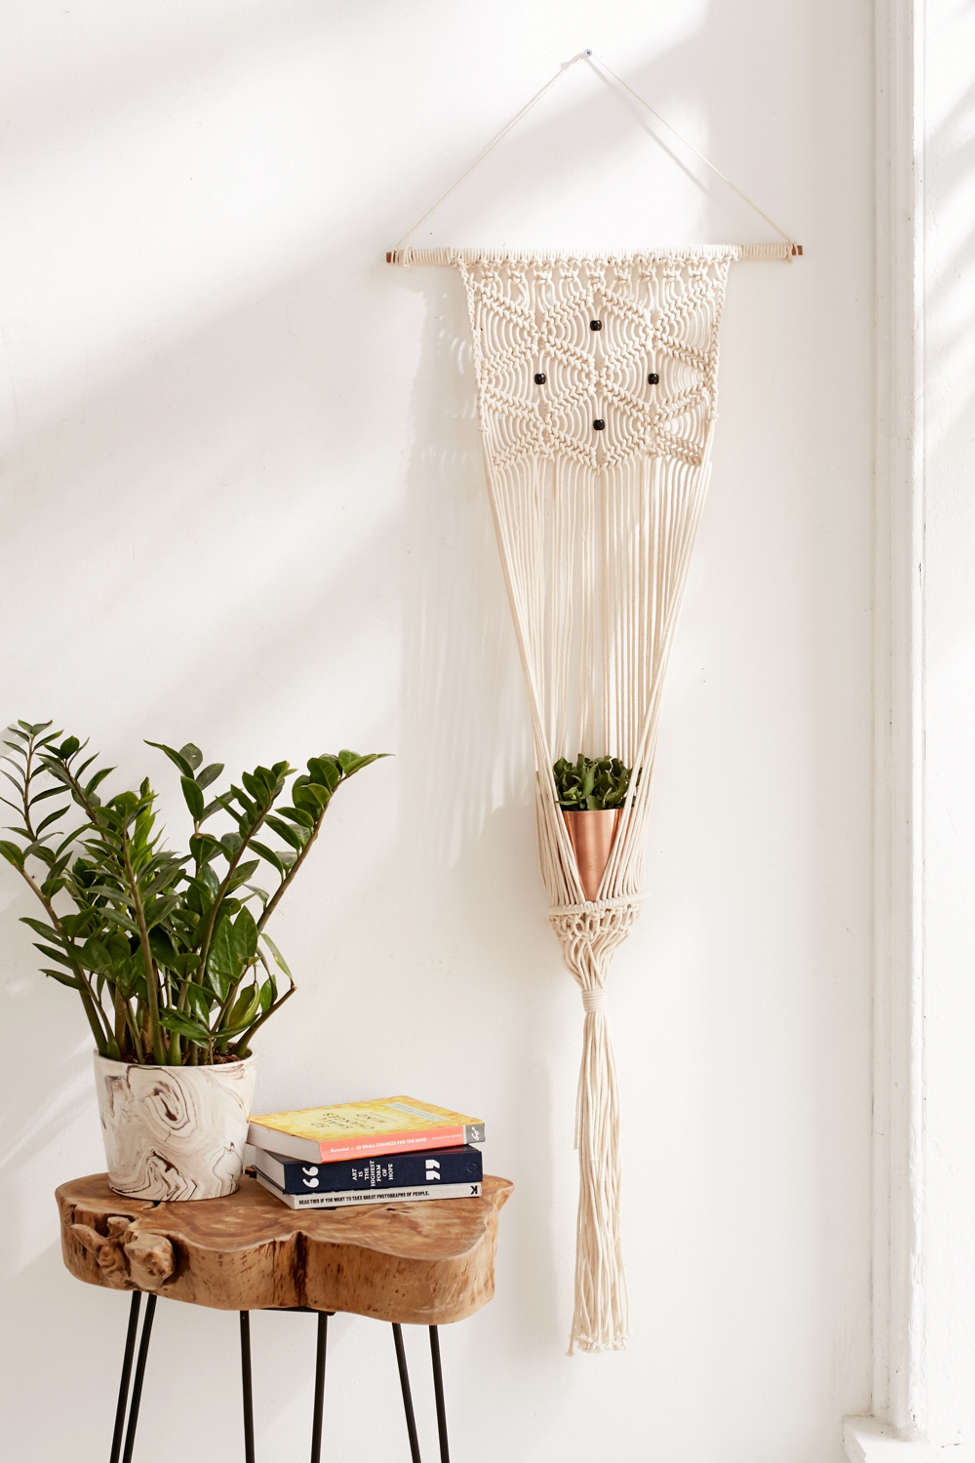 Slide View: 1: Macrame Hanging Wall Planter